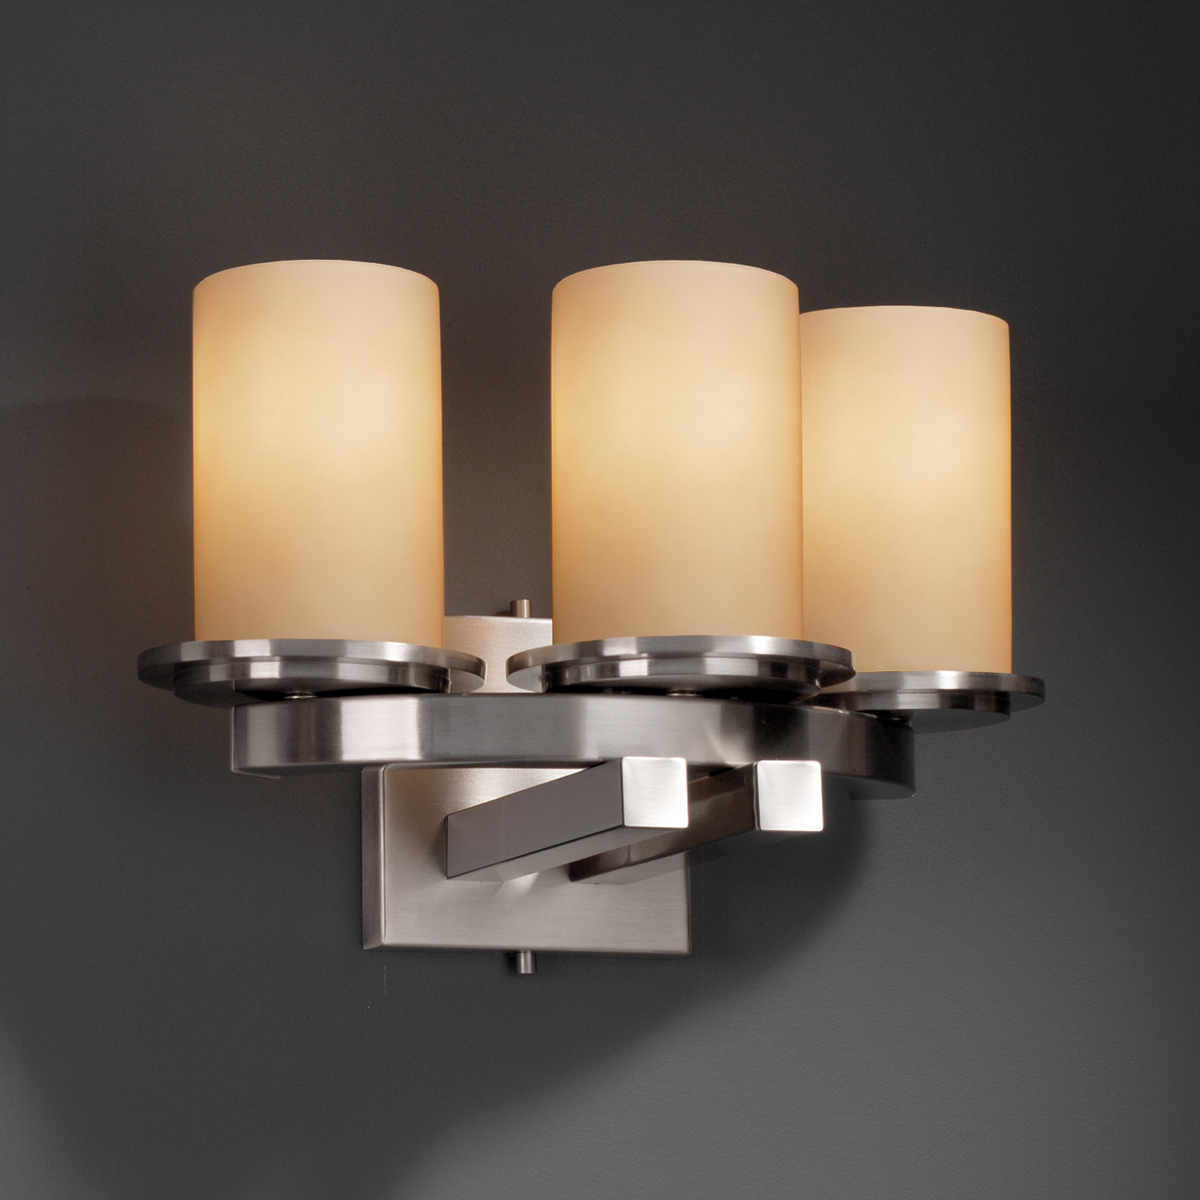 Justice Design (FSN-8776) Dakota 3-Light Curved-Bar Wall Sconce from the Fusion Collection